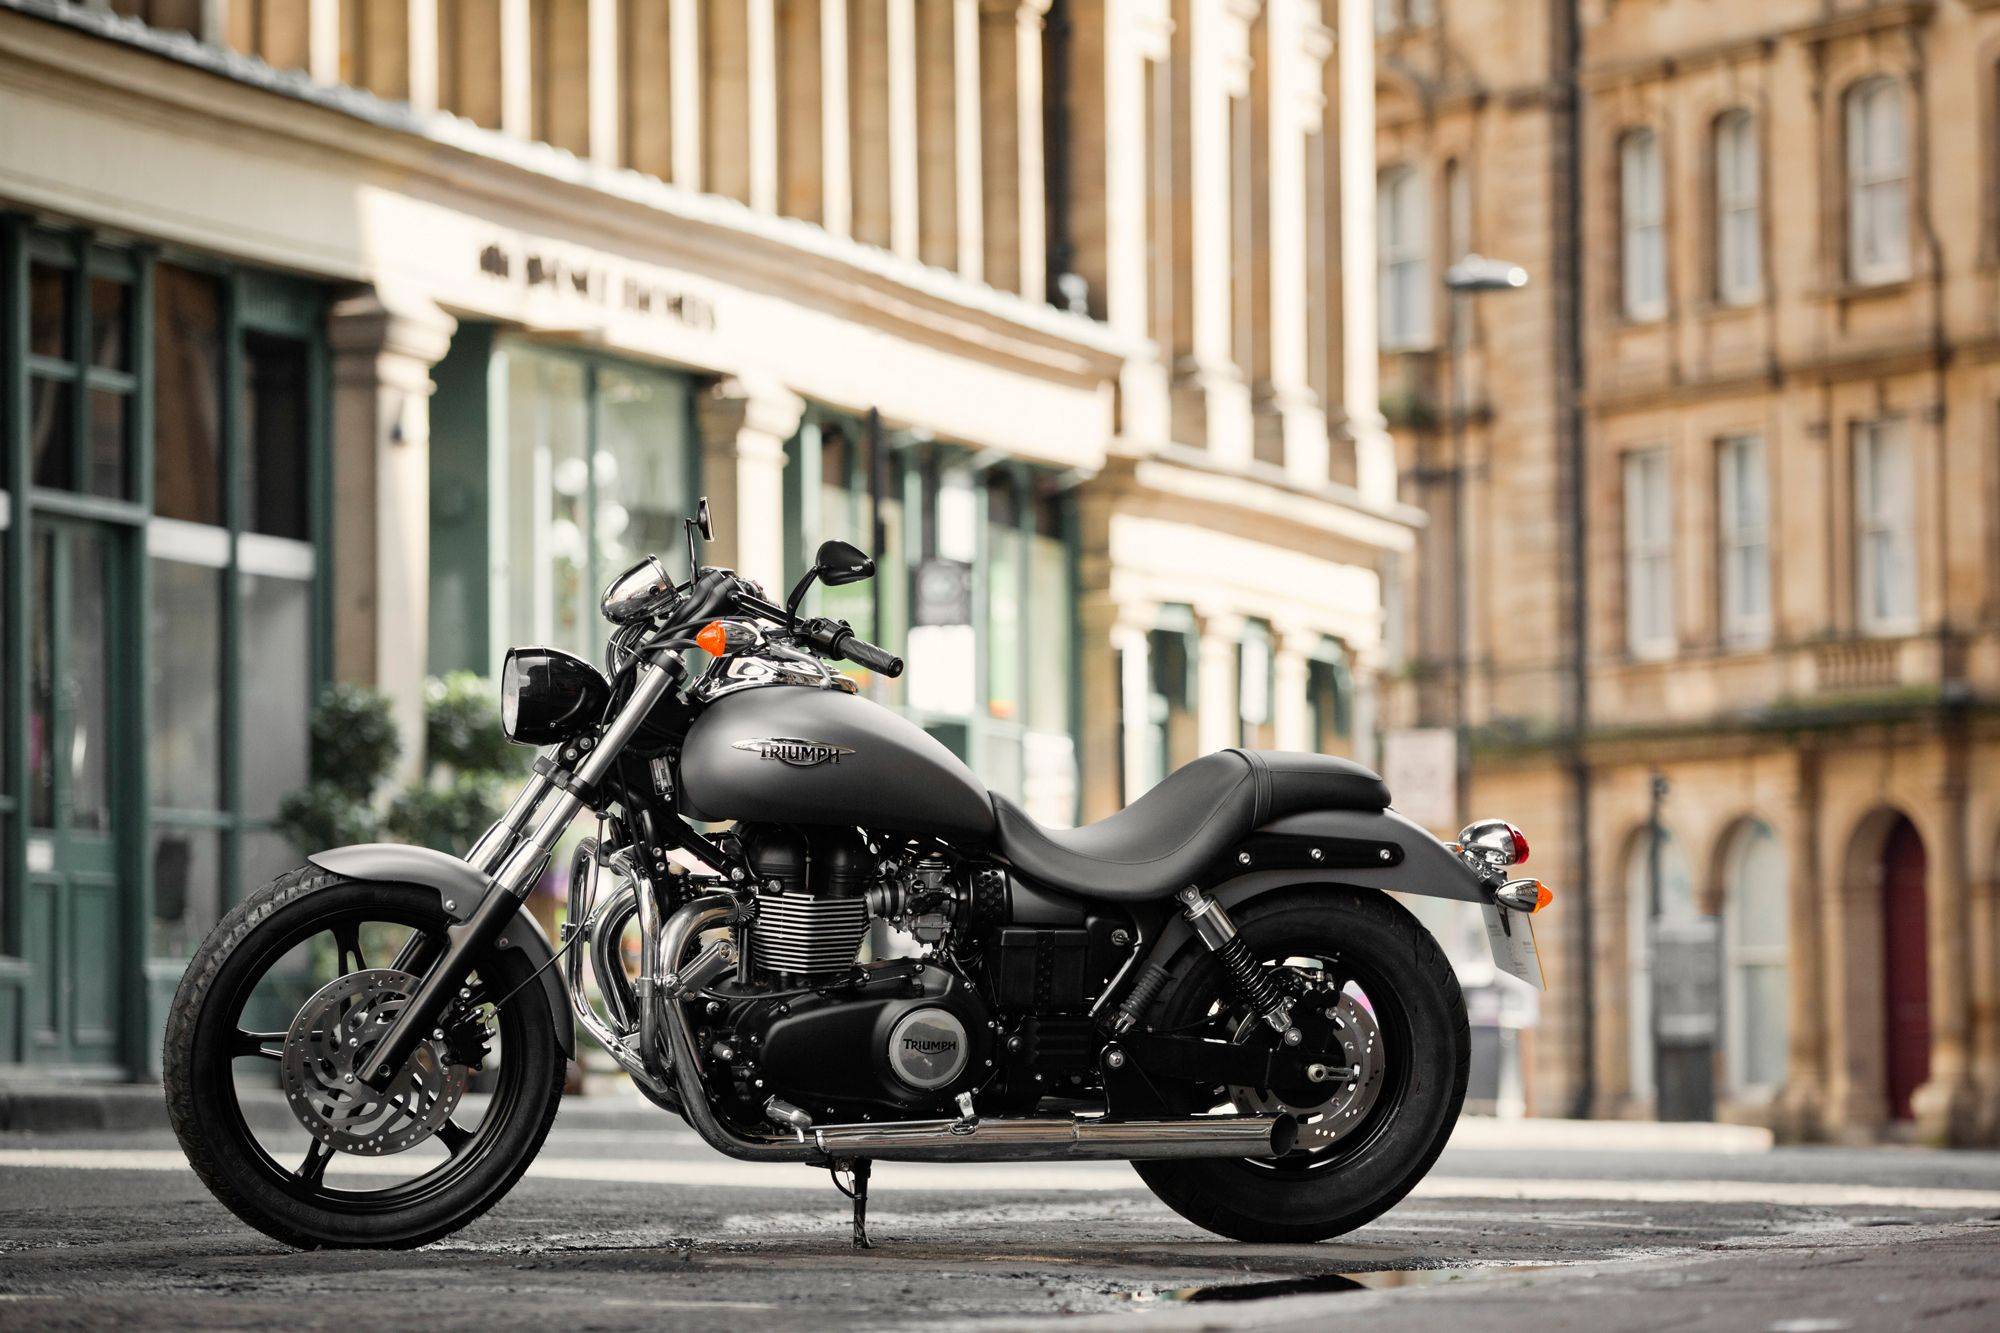 triumph speedmaster 2007 technische daten For all triumph owners the motorcycle manuals can provide all the information you need to new bonneville speedmaster price from £11,650 owner handbook library.